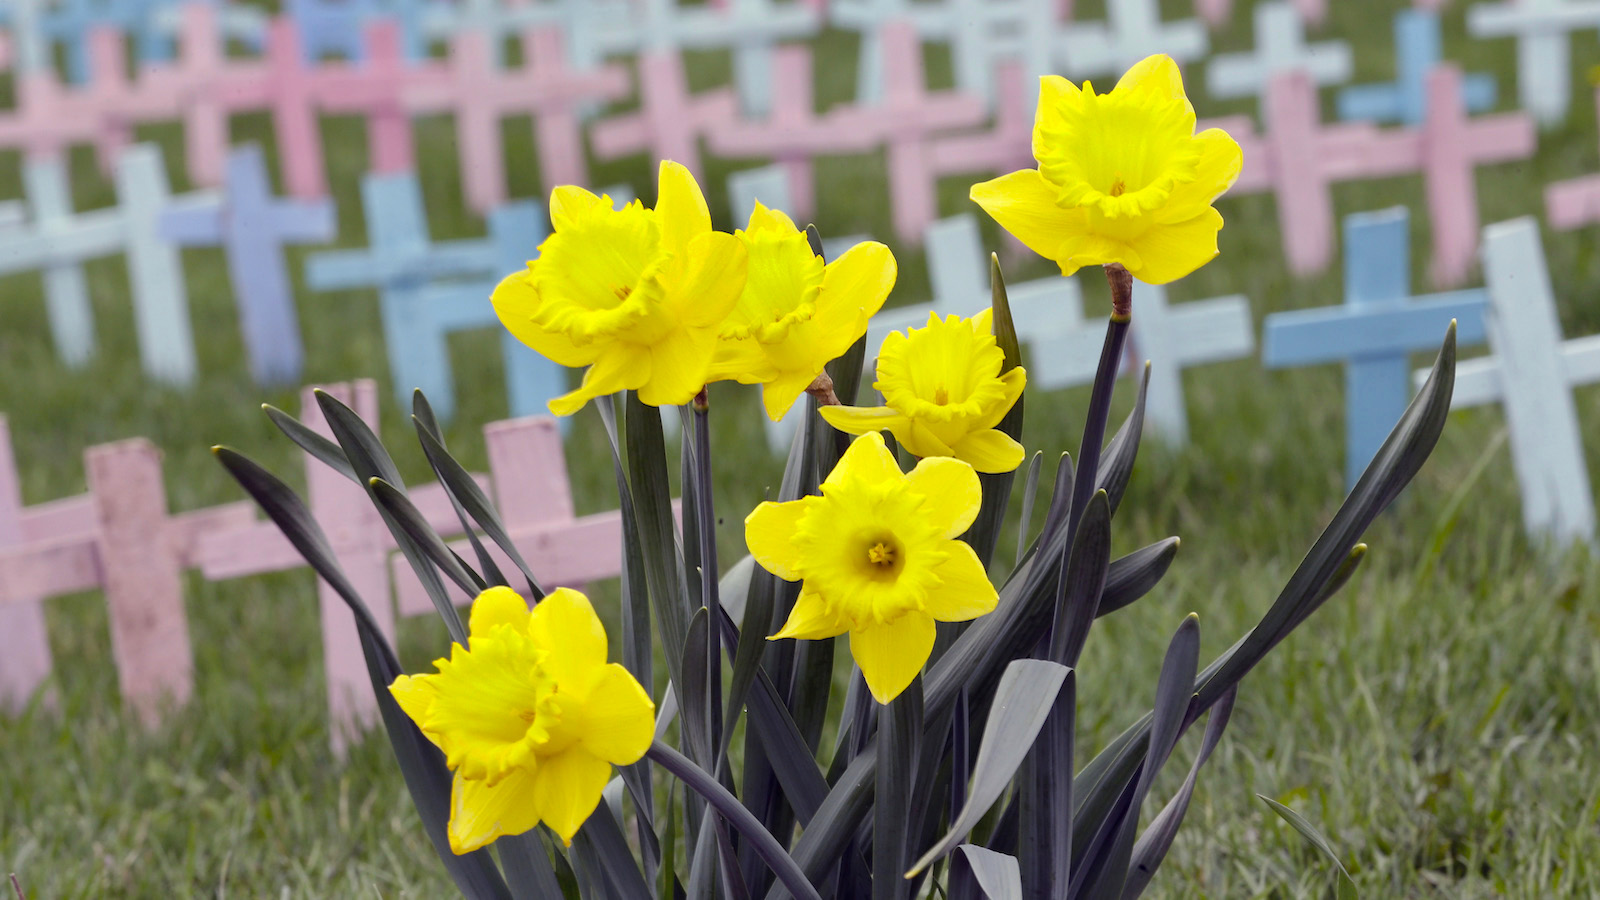 """Daffodils bloom in front of """"The Cemetery of the Innocents"""" where 4000 crosses represent daily abortions in America according to a sign posted at the First Bible Baptist Church under a light rain during the warm spring weather in Lancaster, N.Y., Wednesday, April 24, 2013. (AP Photo/David Duprey)"""